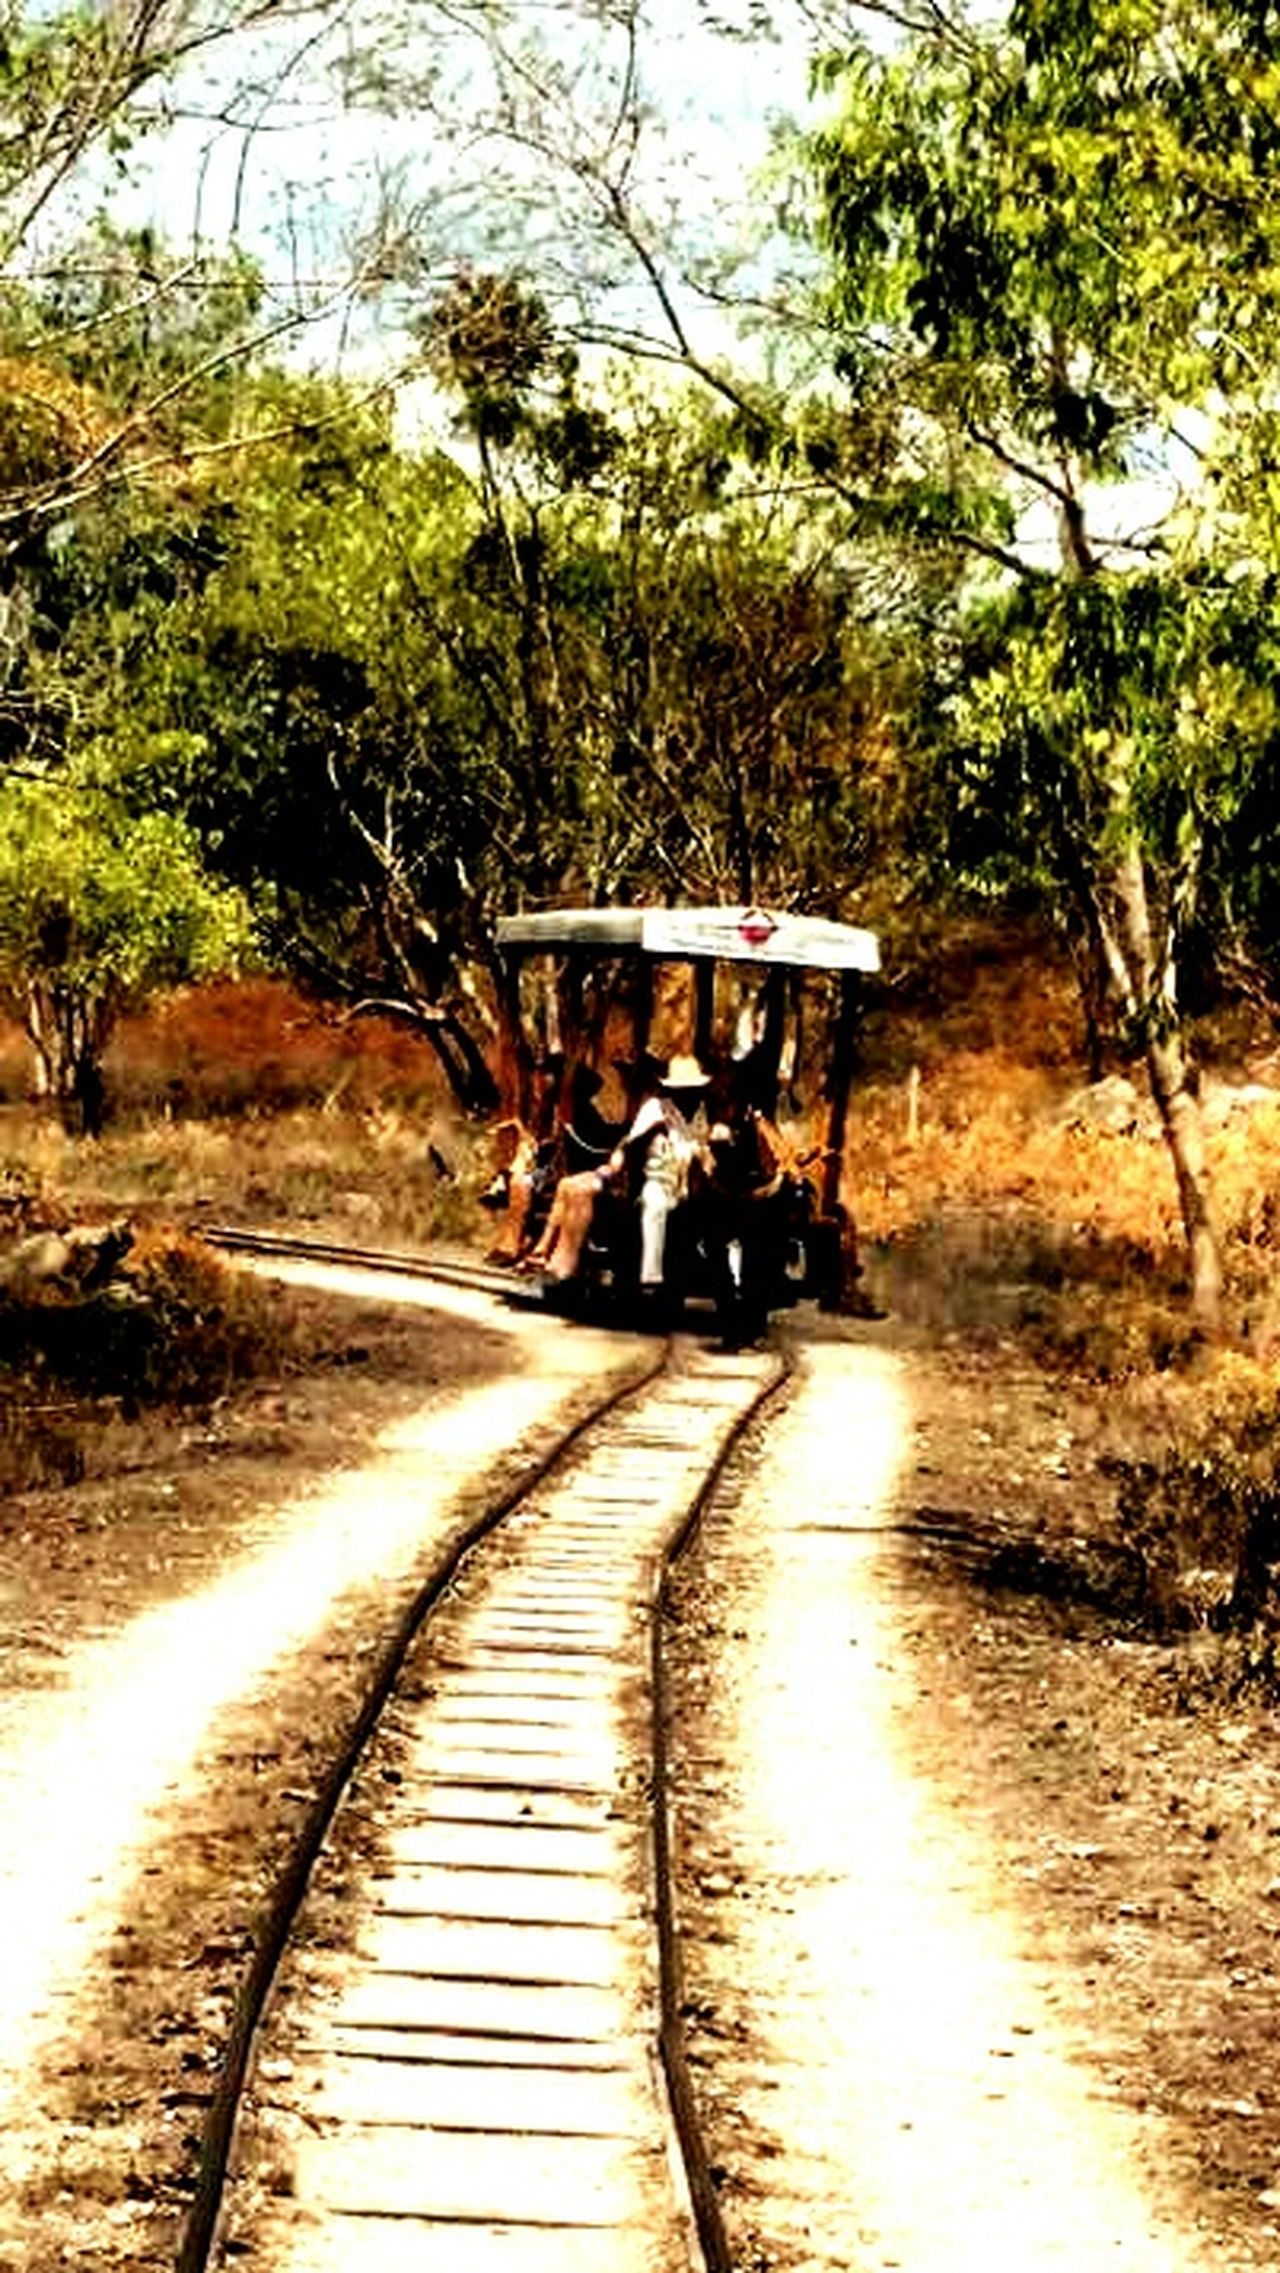 Transportation Mode Of Transport Tree Real People Nature Railroad Track Donkey Rides Yucatan Mexico